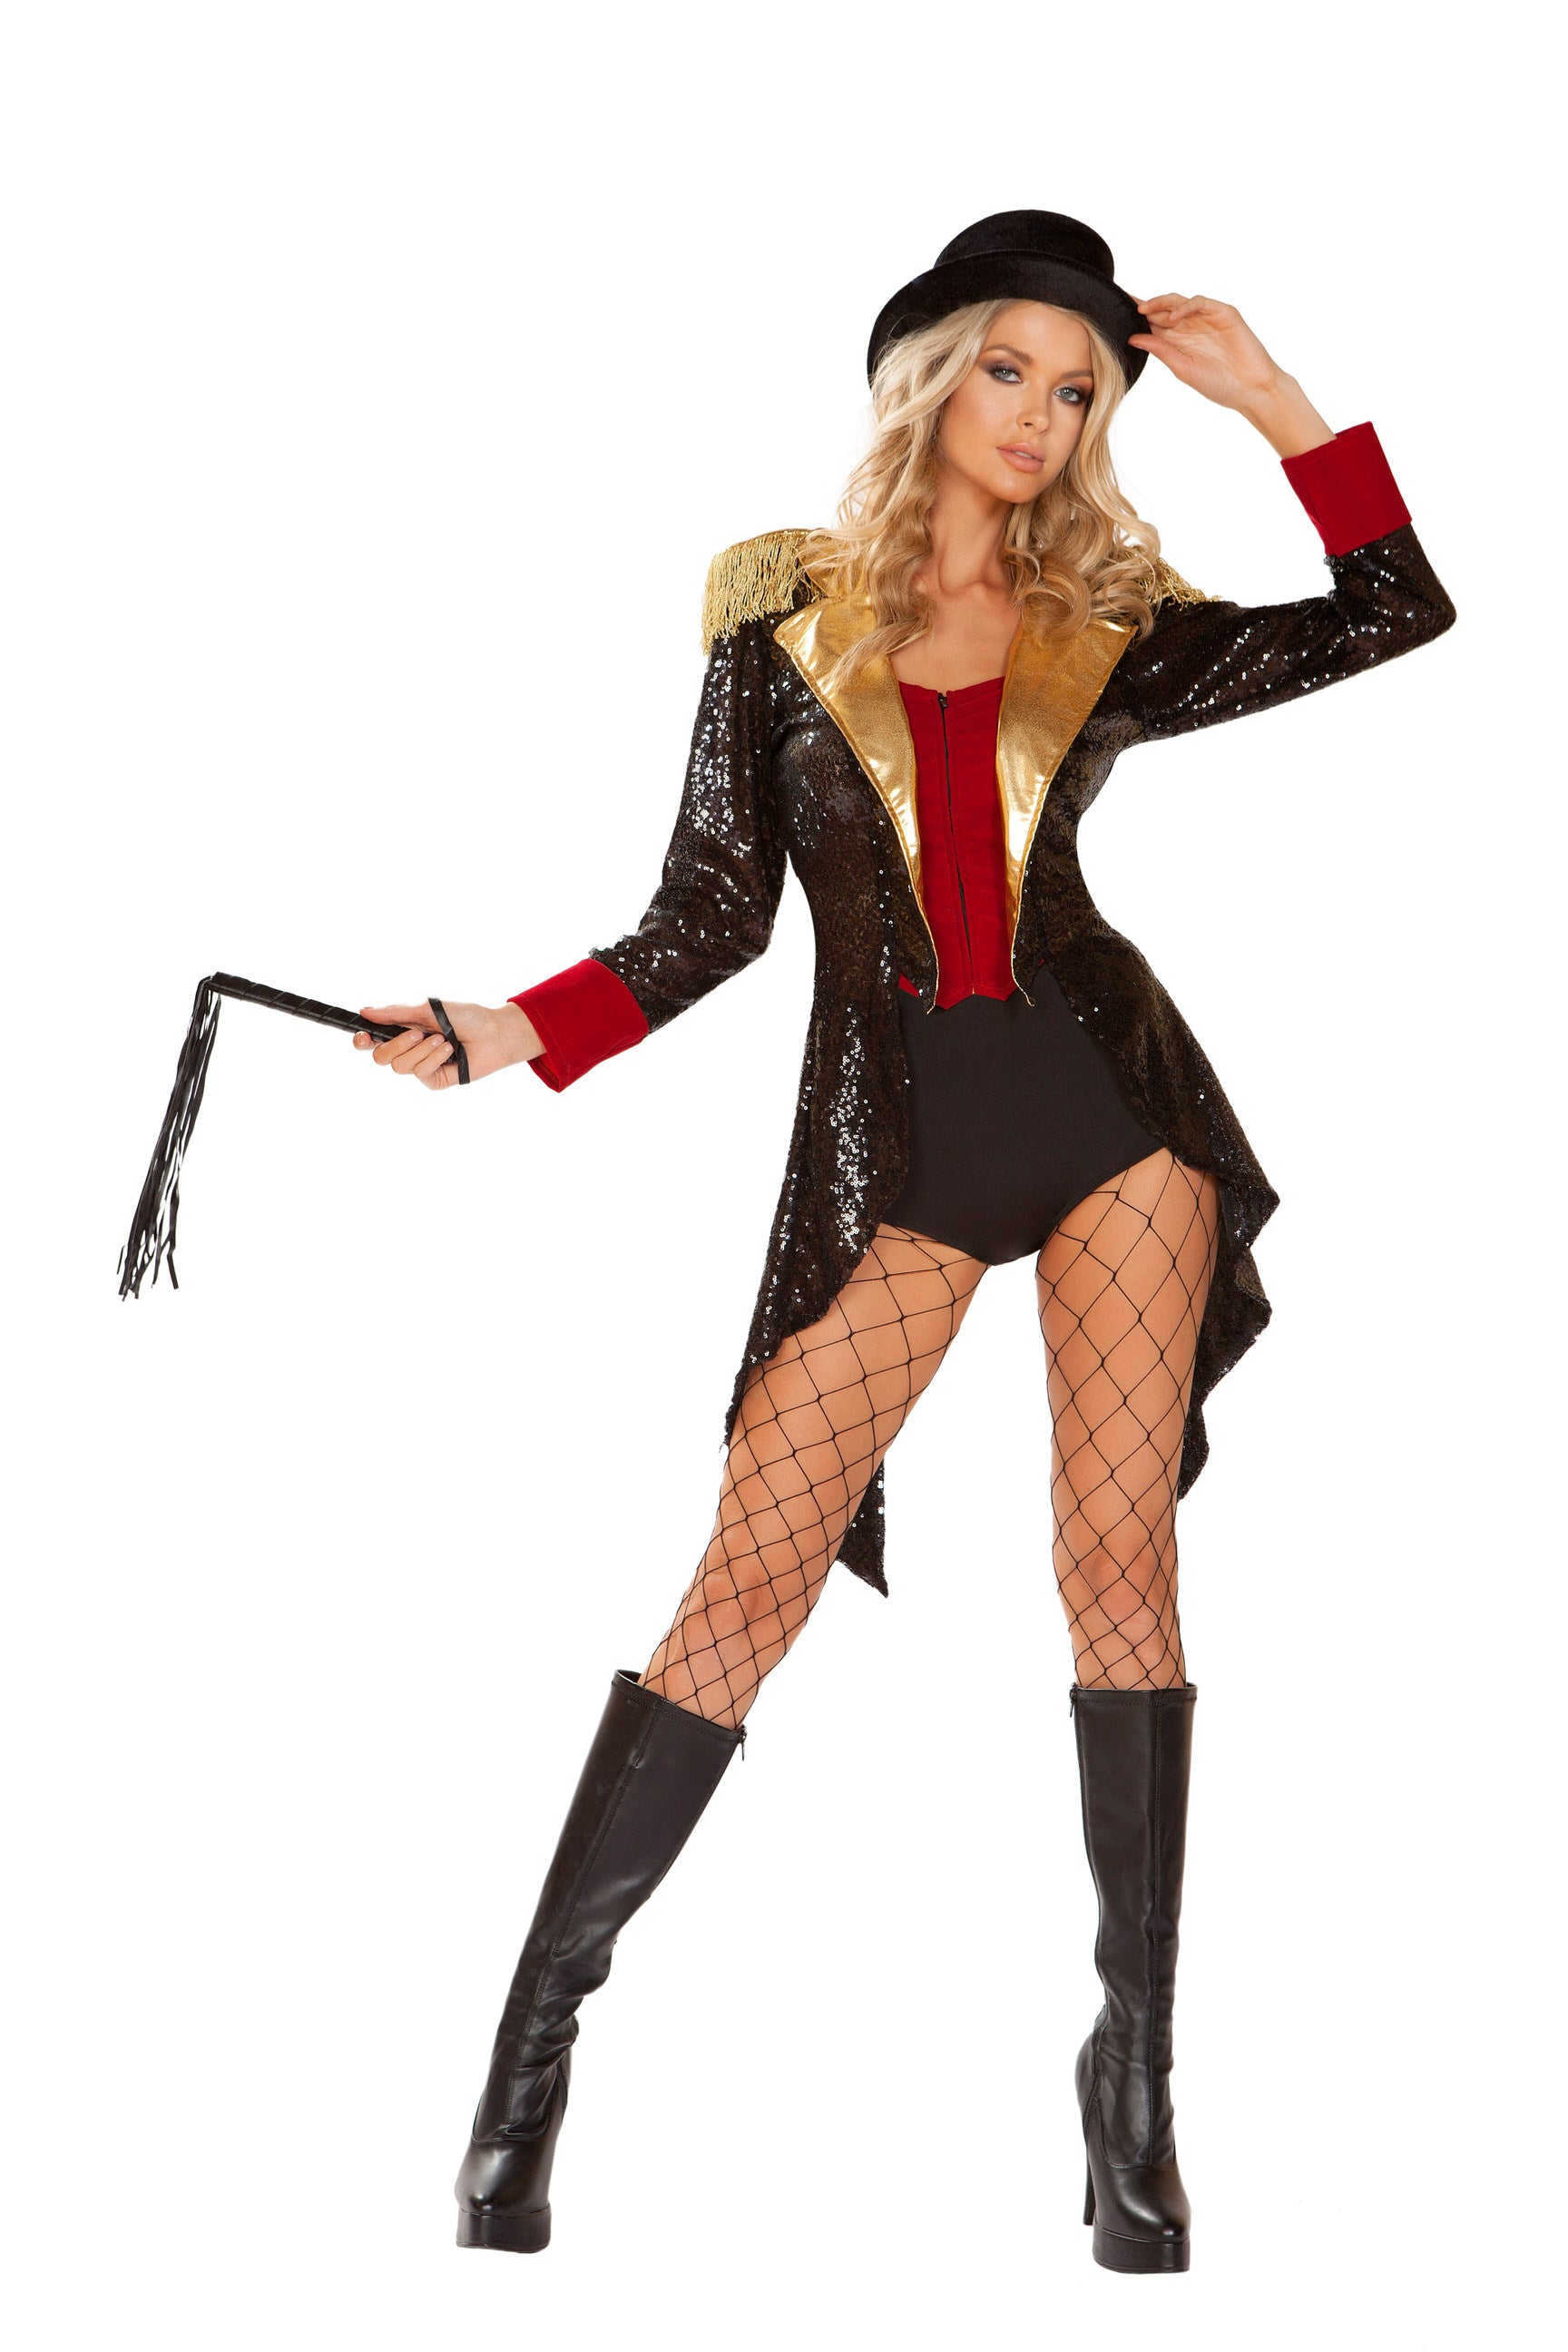 4940 - 4pc Ringmaster of Circuses ${description} | Roma Costume and Roma Confidential wholesale manufacturer of Women Apparel bulk world wide wholesale and world wide drop ship services for Adult Halloween Costumes, Sexy and Elegant Lingerie, Rave Clothing, Club wear, and Christmas Costumes. Costumes, Roma Costume, Inc., Roma Costume, Roma Confidential, Wholesale clothing, drop ship, drop ship service, Wholesale Lingerie, Wholesale Adult Halloween Costumes, Rave Clothing, EDM Clothing, Festival Wear, Christmas Costumes, Clubwear, Club wear.